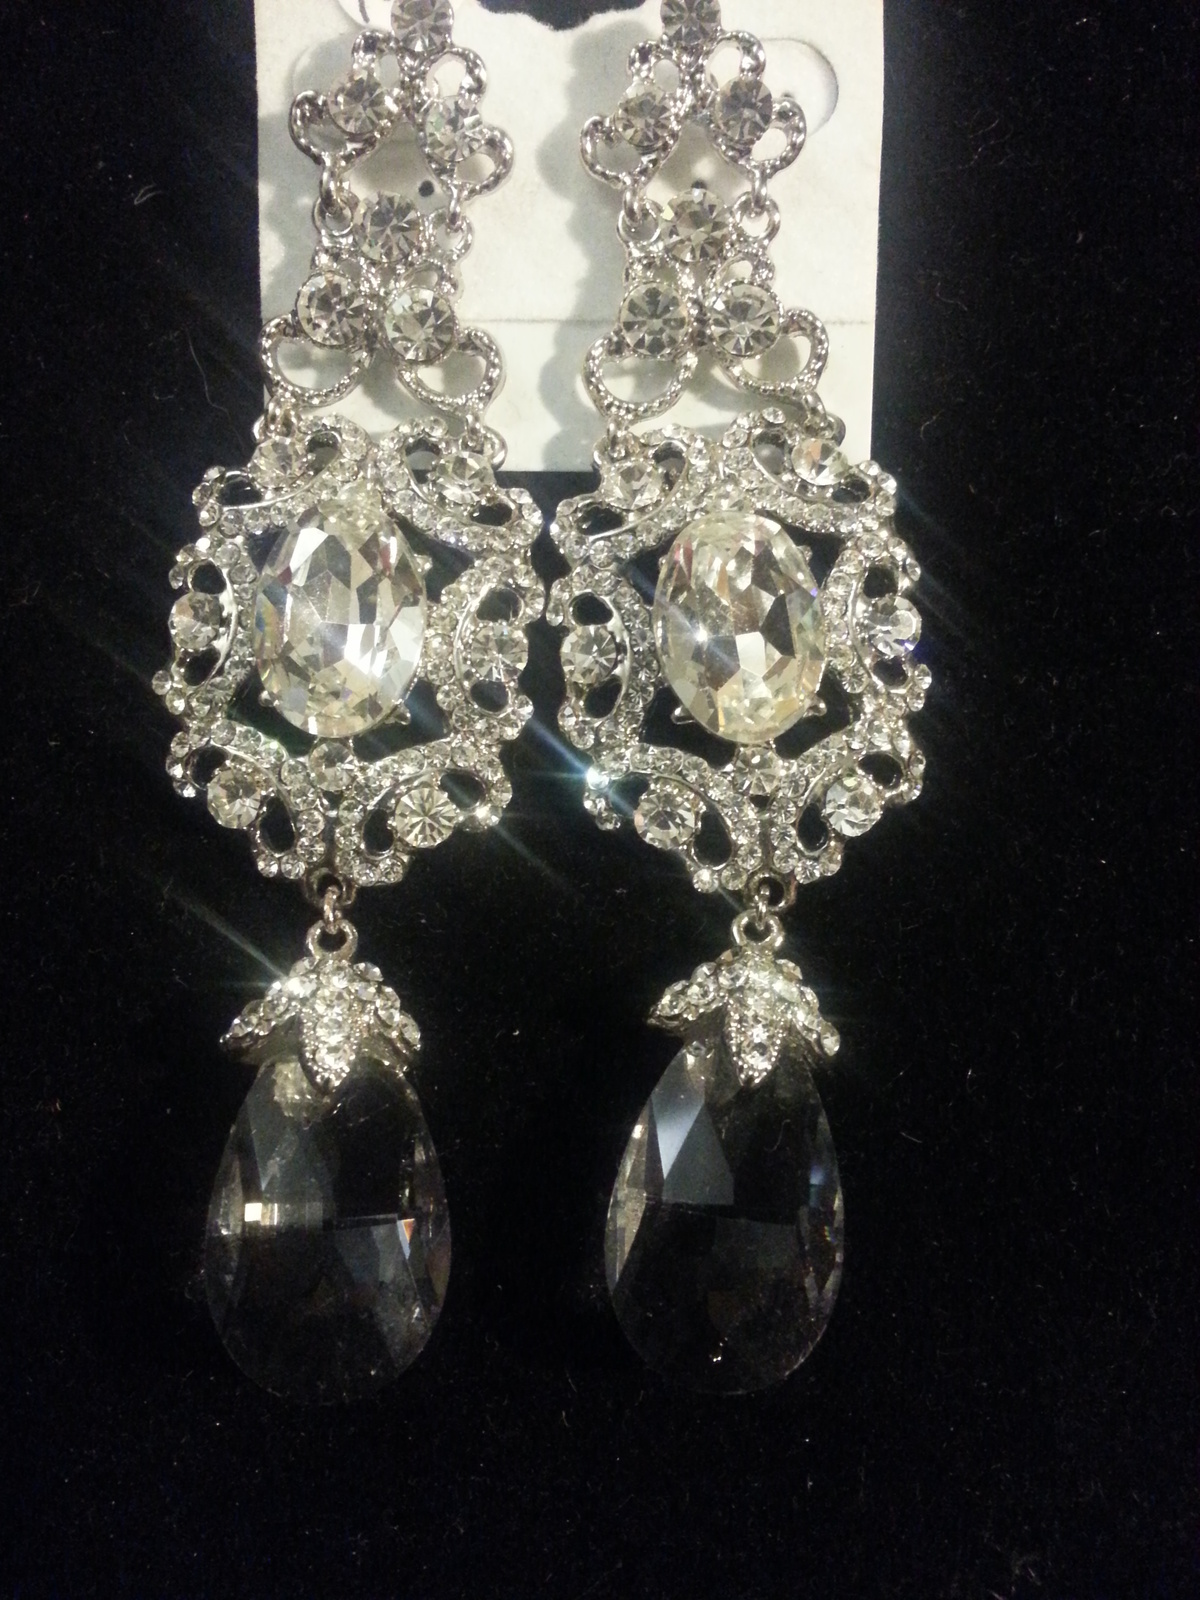 Vintage Style Silver Clear AB Swarovski Crystals and CZ Bridal Earrings